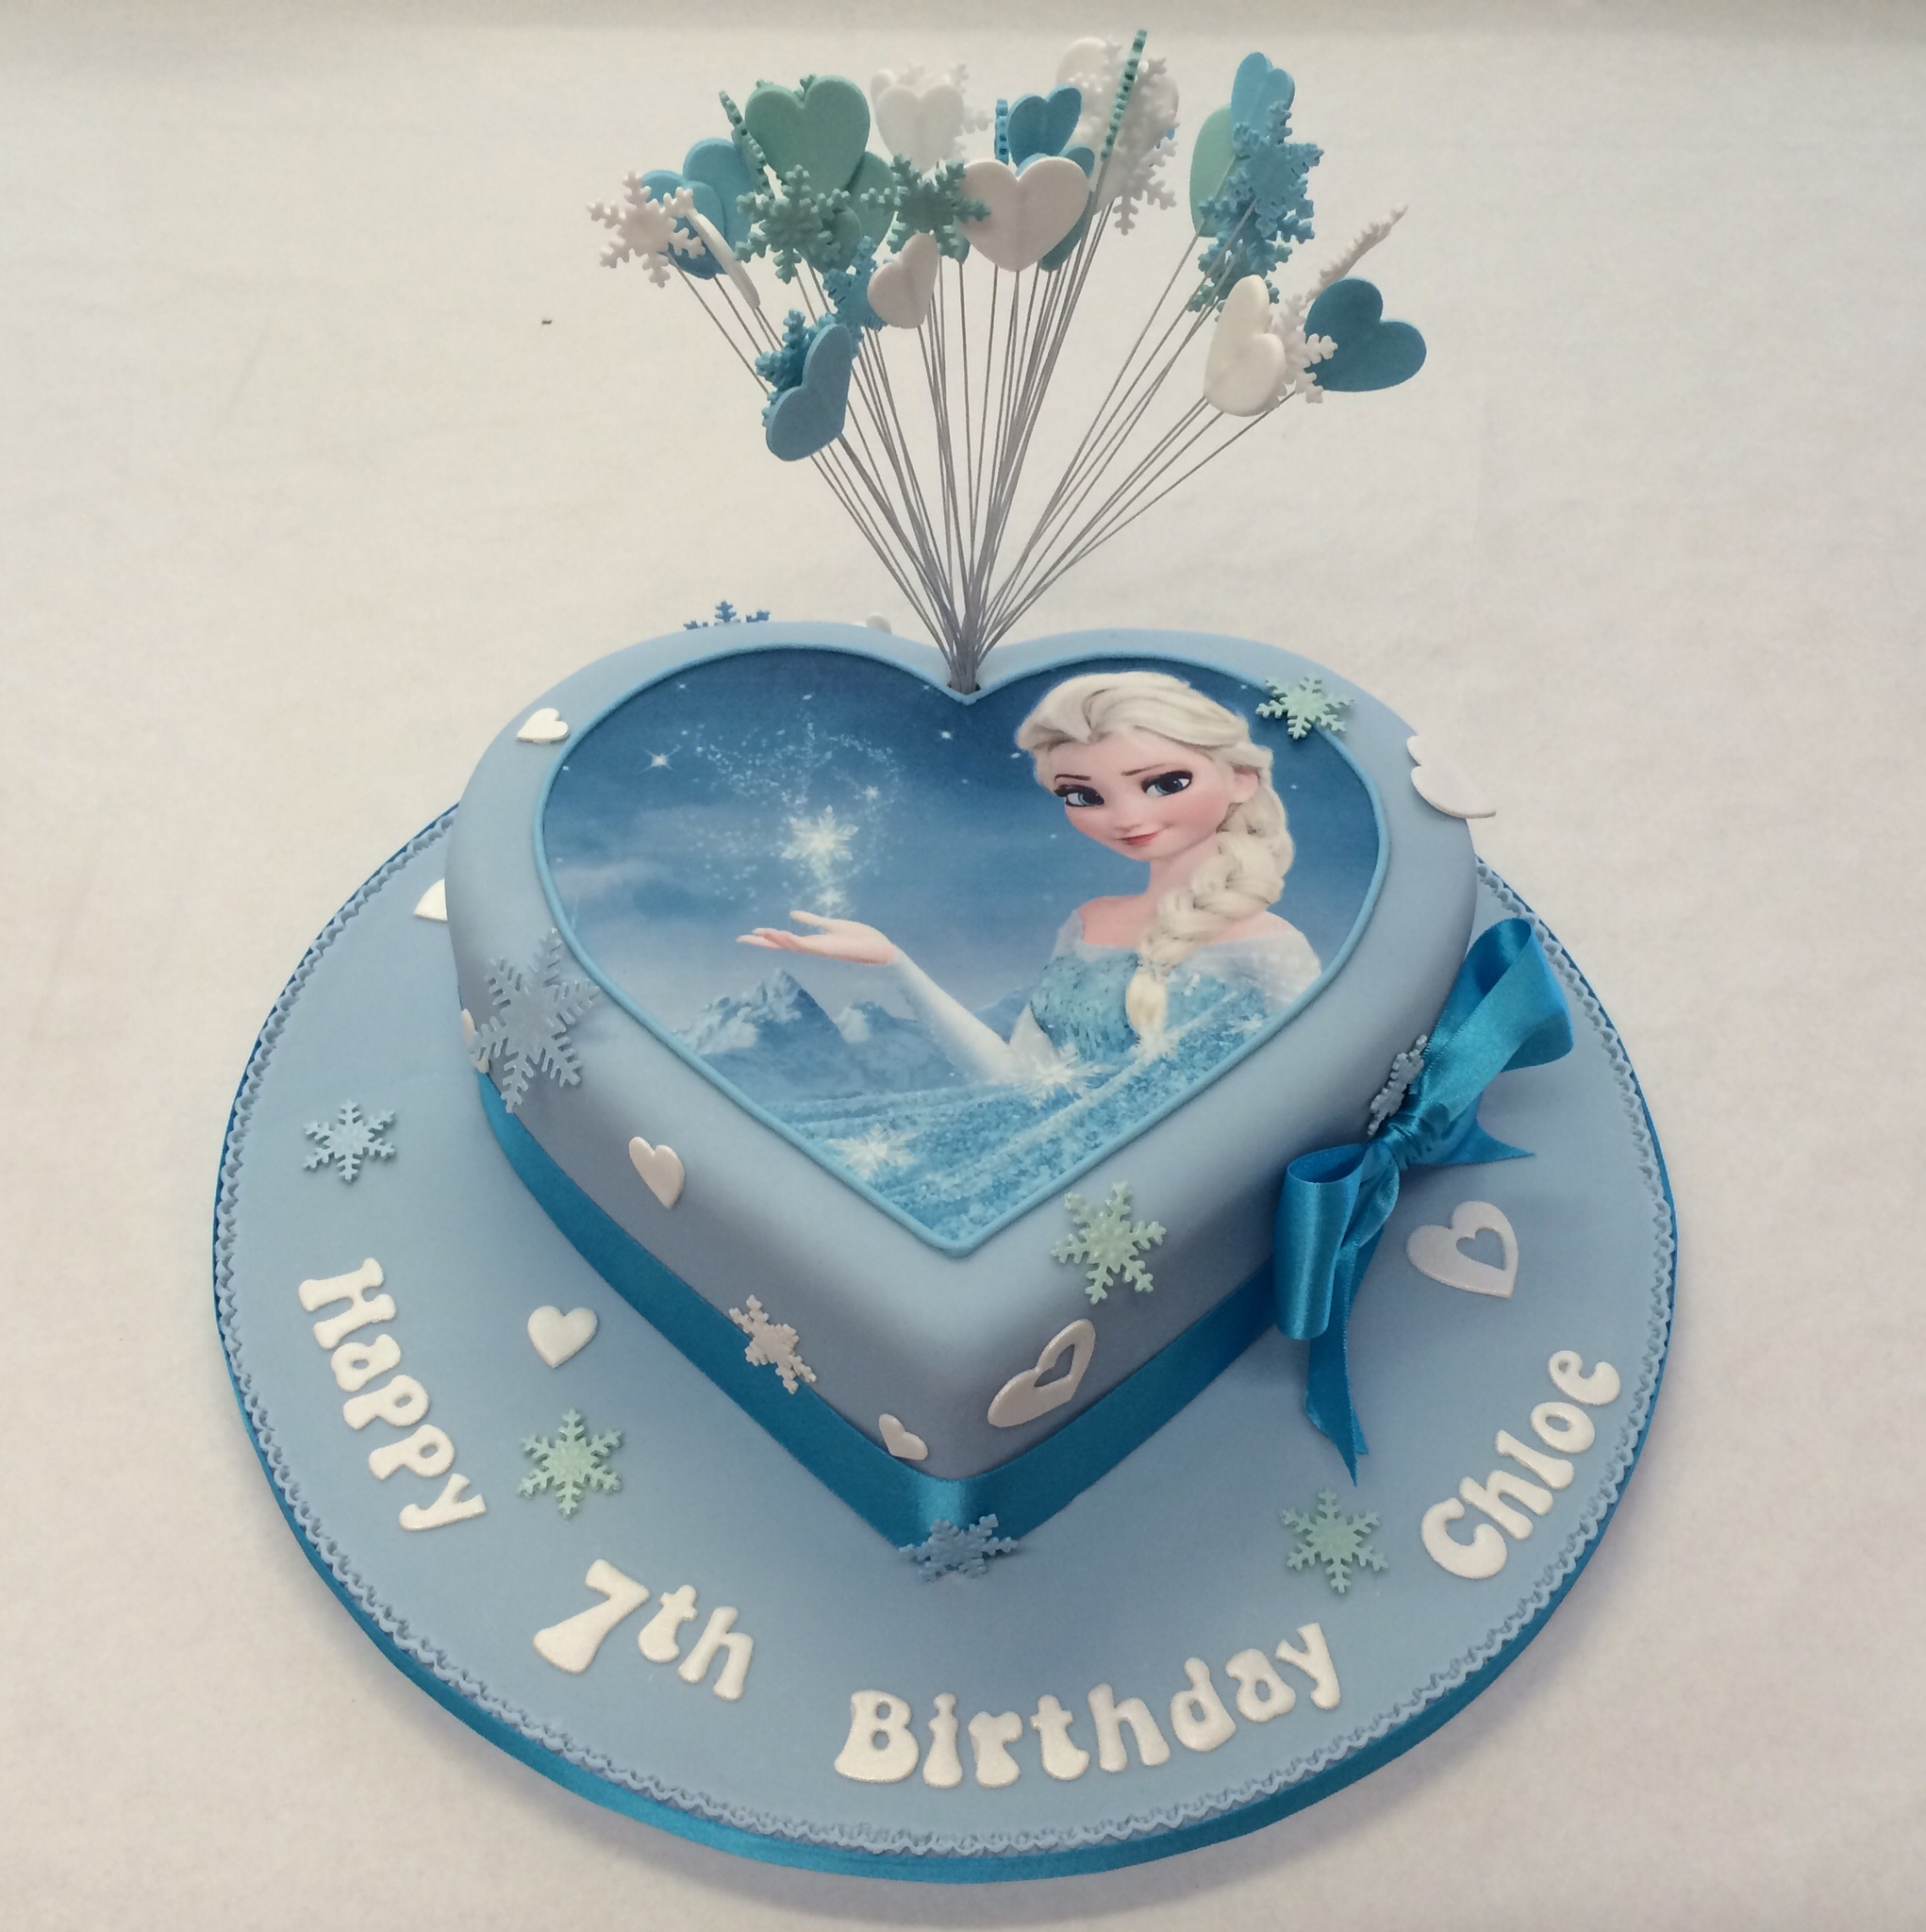 Elsa Birthday Cakes Heart Shaped Frozen Cake Girls Birthday Cakes Celebration Cakes